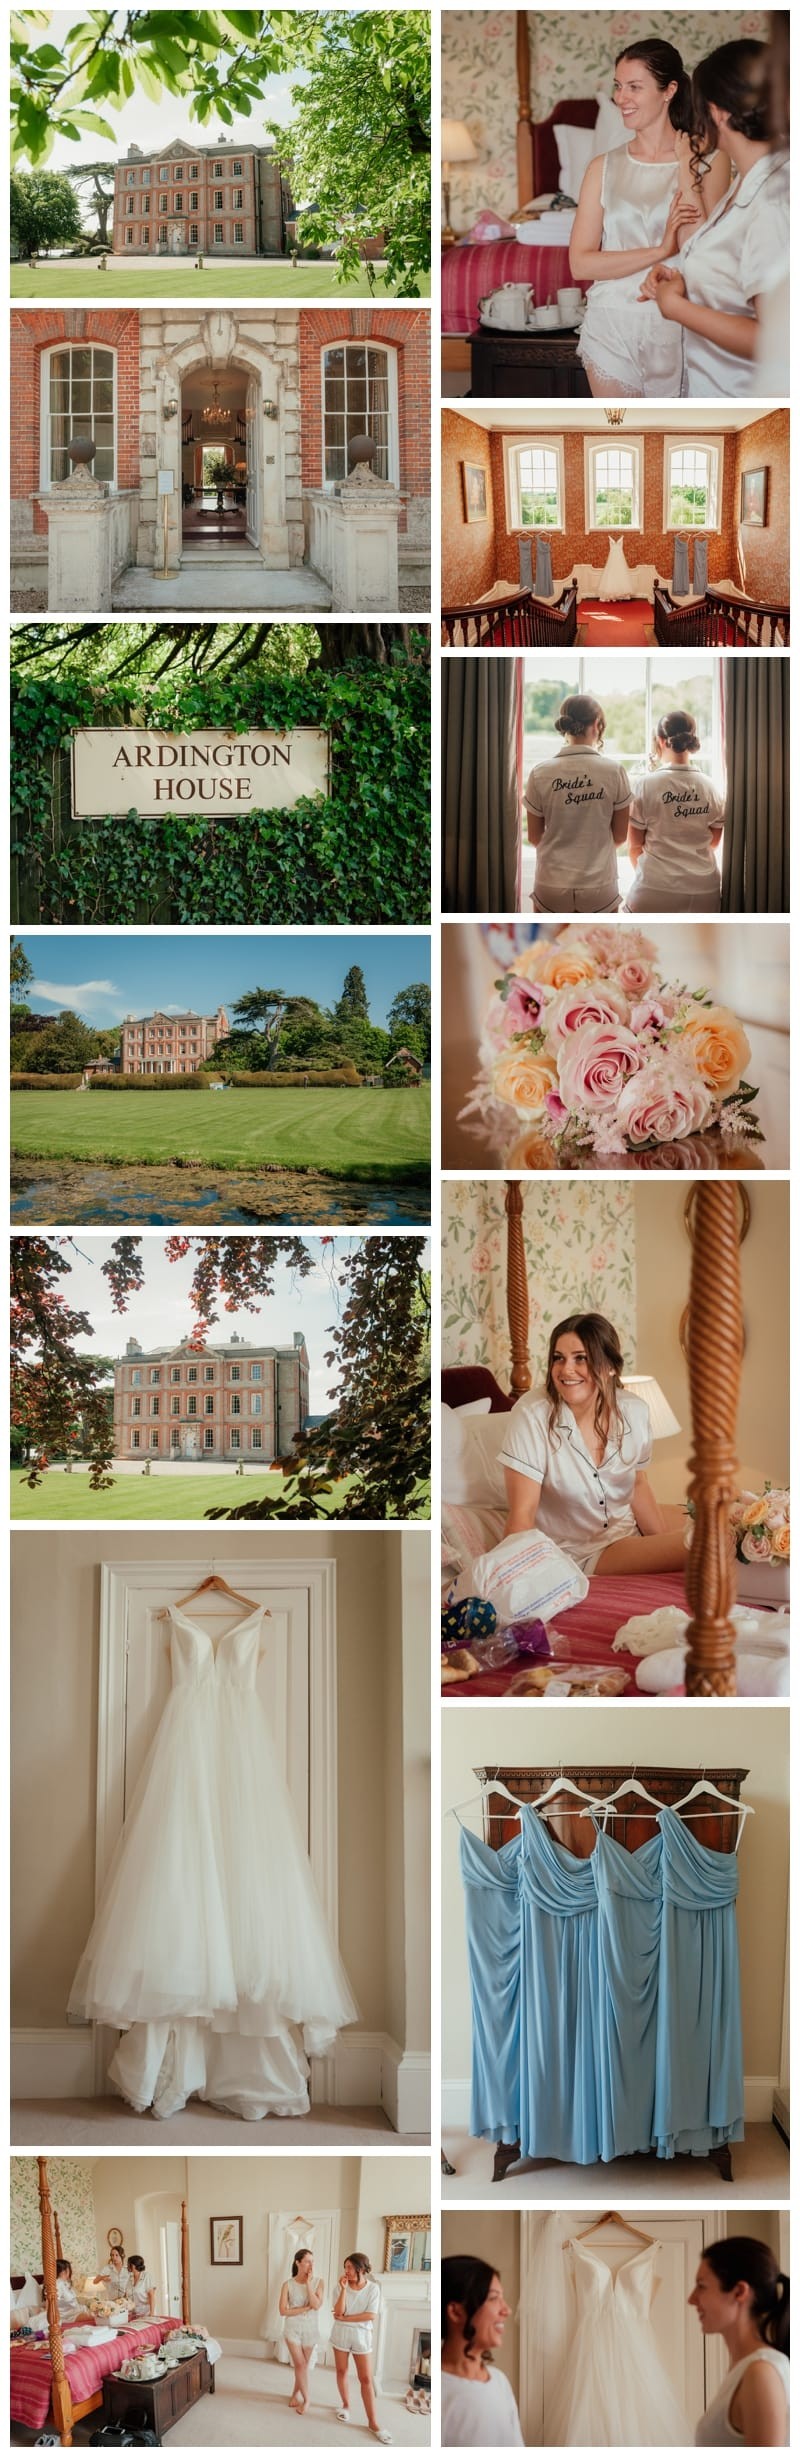 Bridal Preparation Stately Home